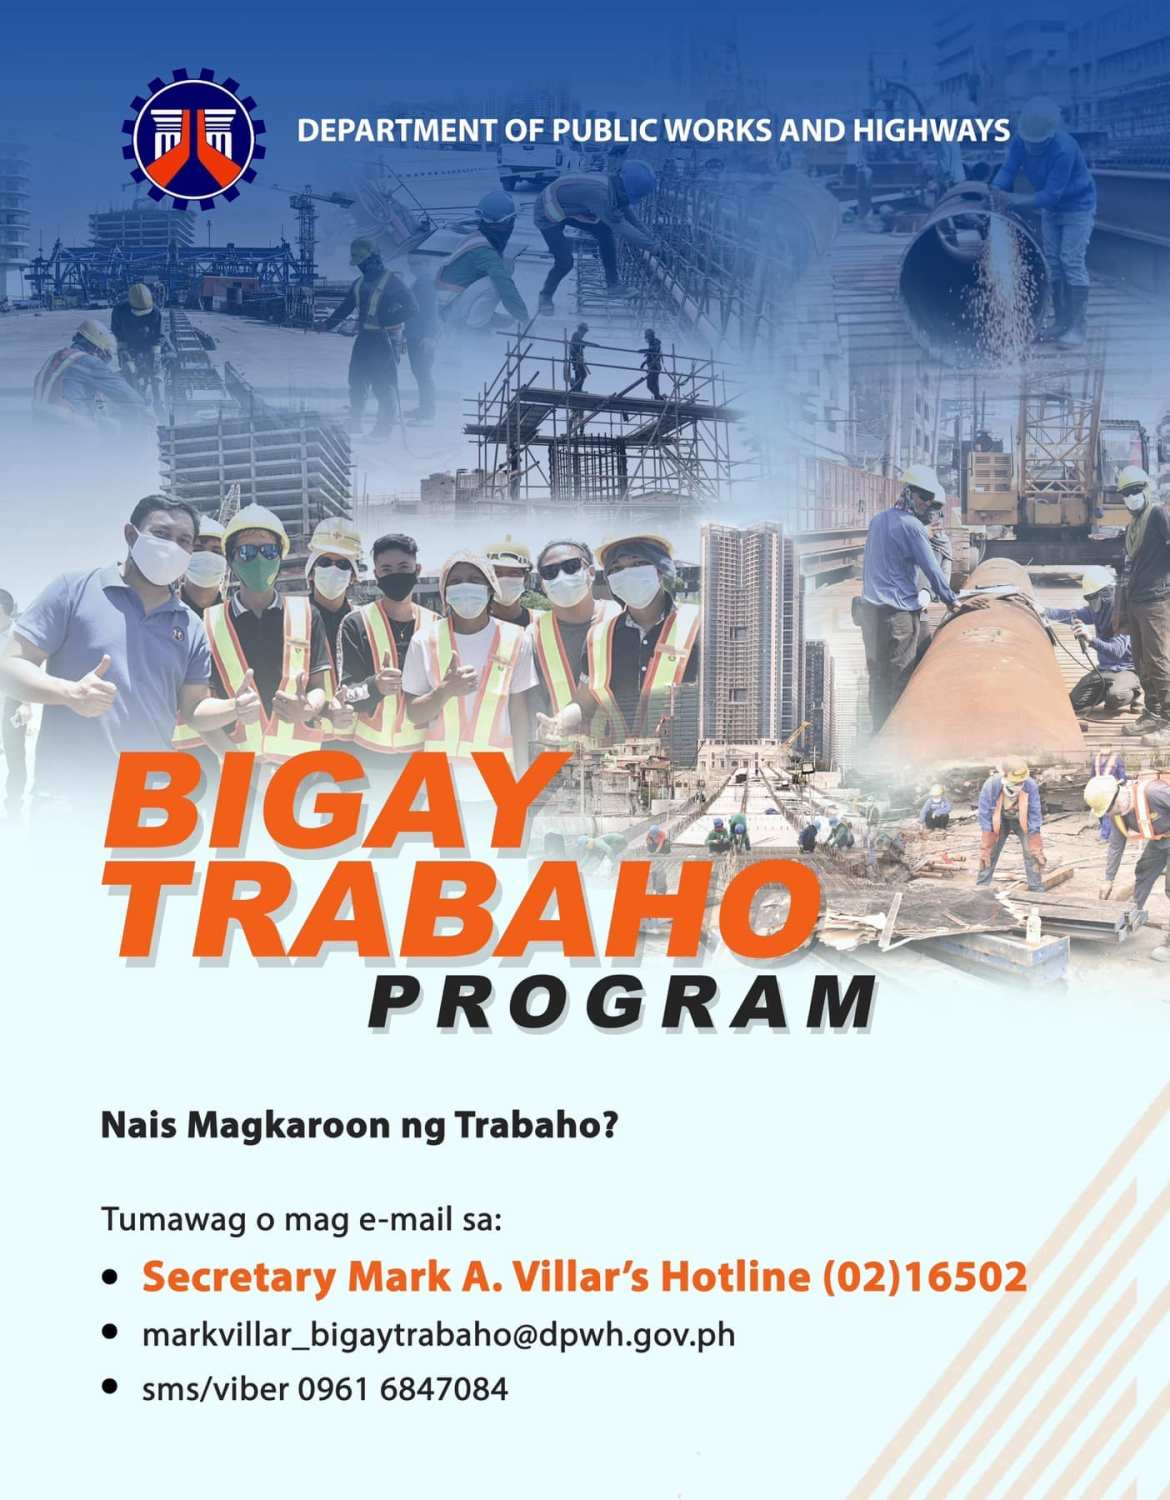 DPWH's 'Bigay Trabaho' provides more than 1K jobs in 1 monthBy Glen S. Ramos